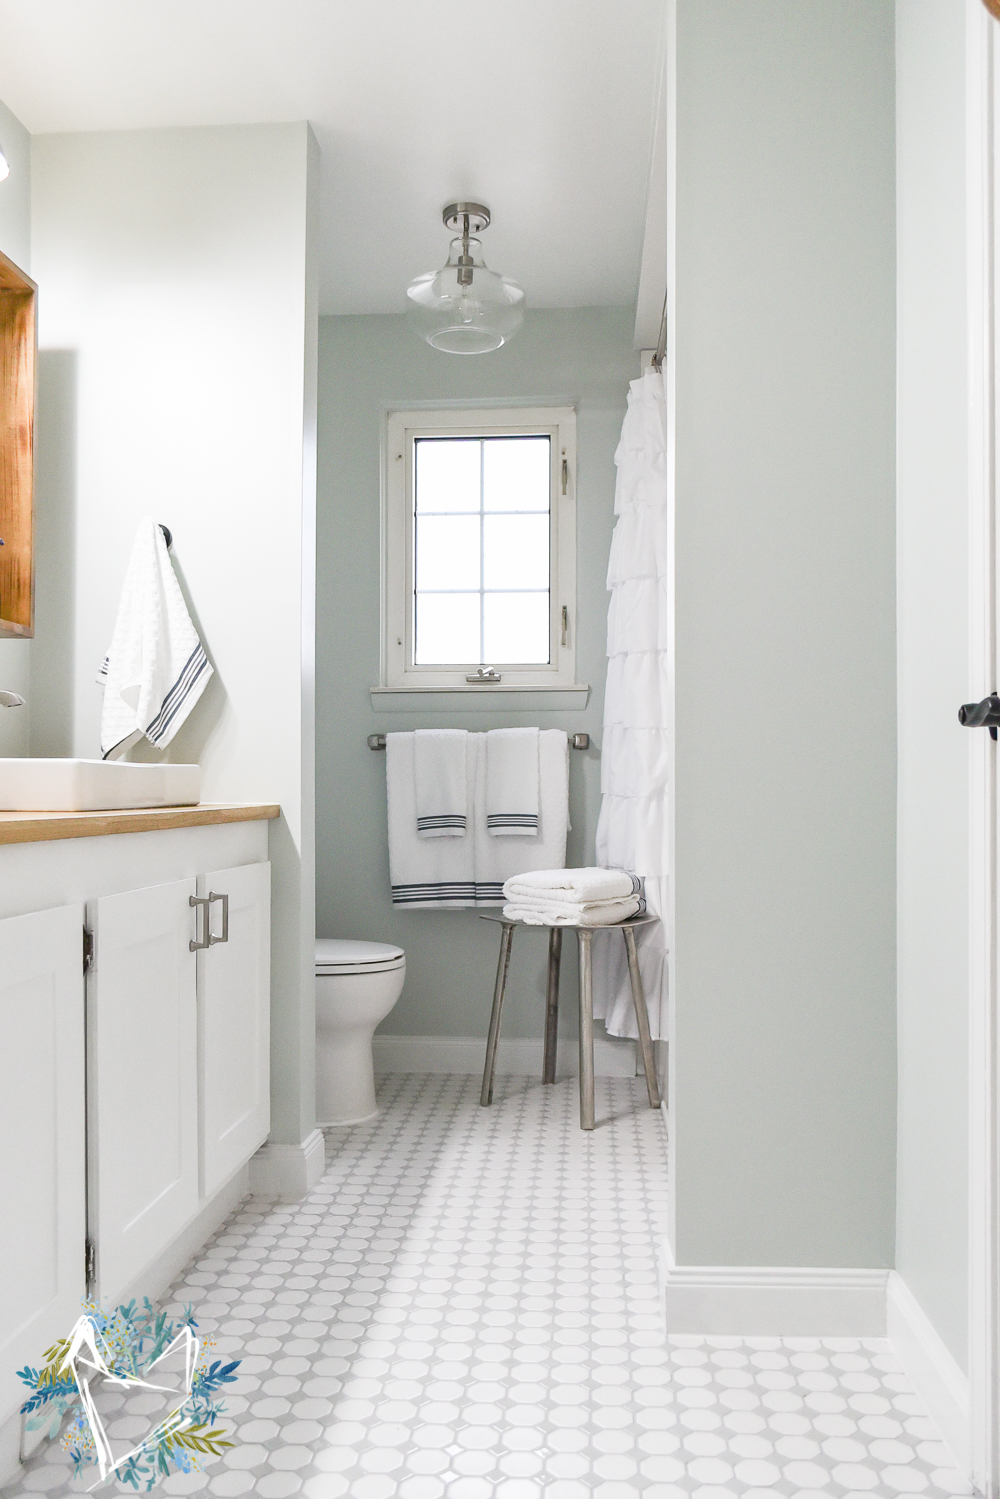 This Modern Farmhouse Bathroom is the perfect way to get a fixer upper farmhouse look on a budget! Your guests will think Joanna Gaines designed it herself. Come see this amazing transformation!